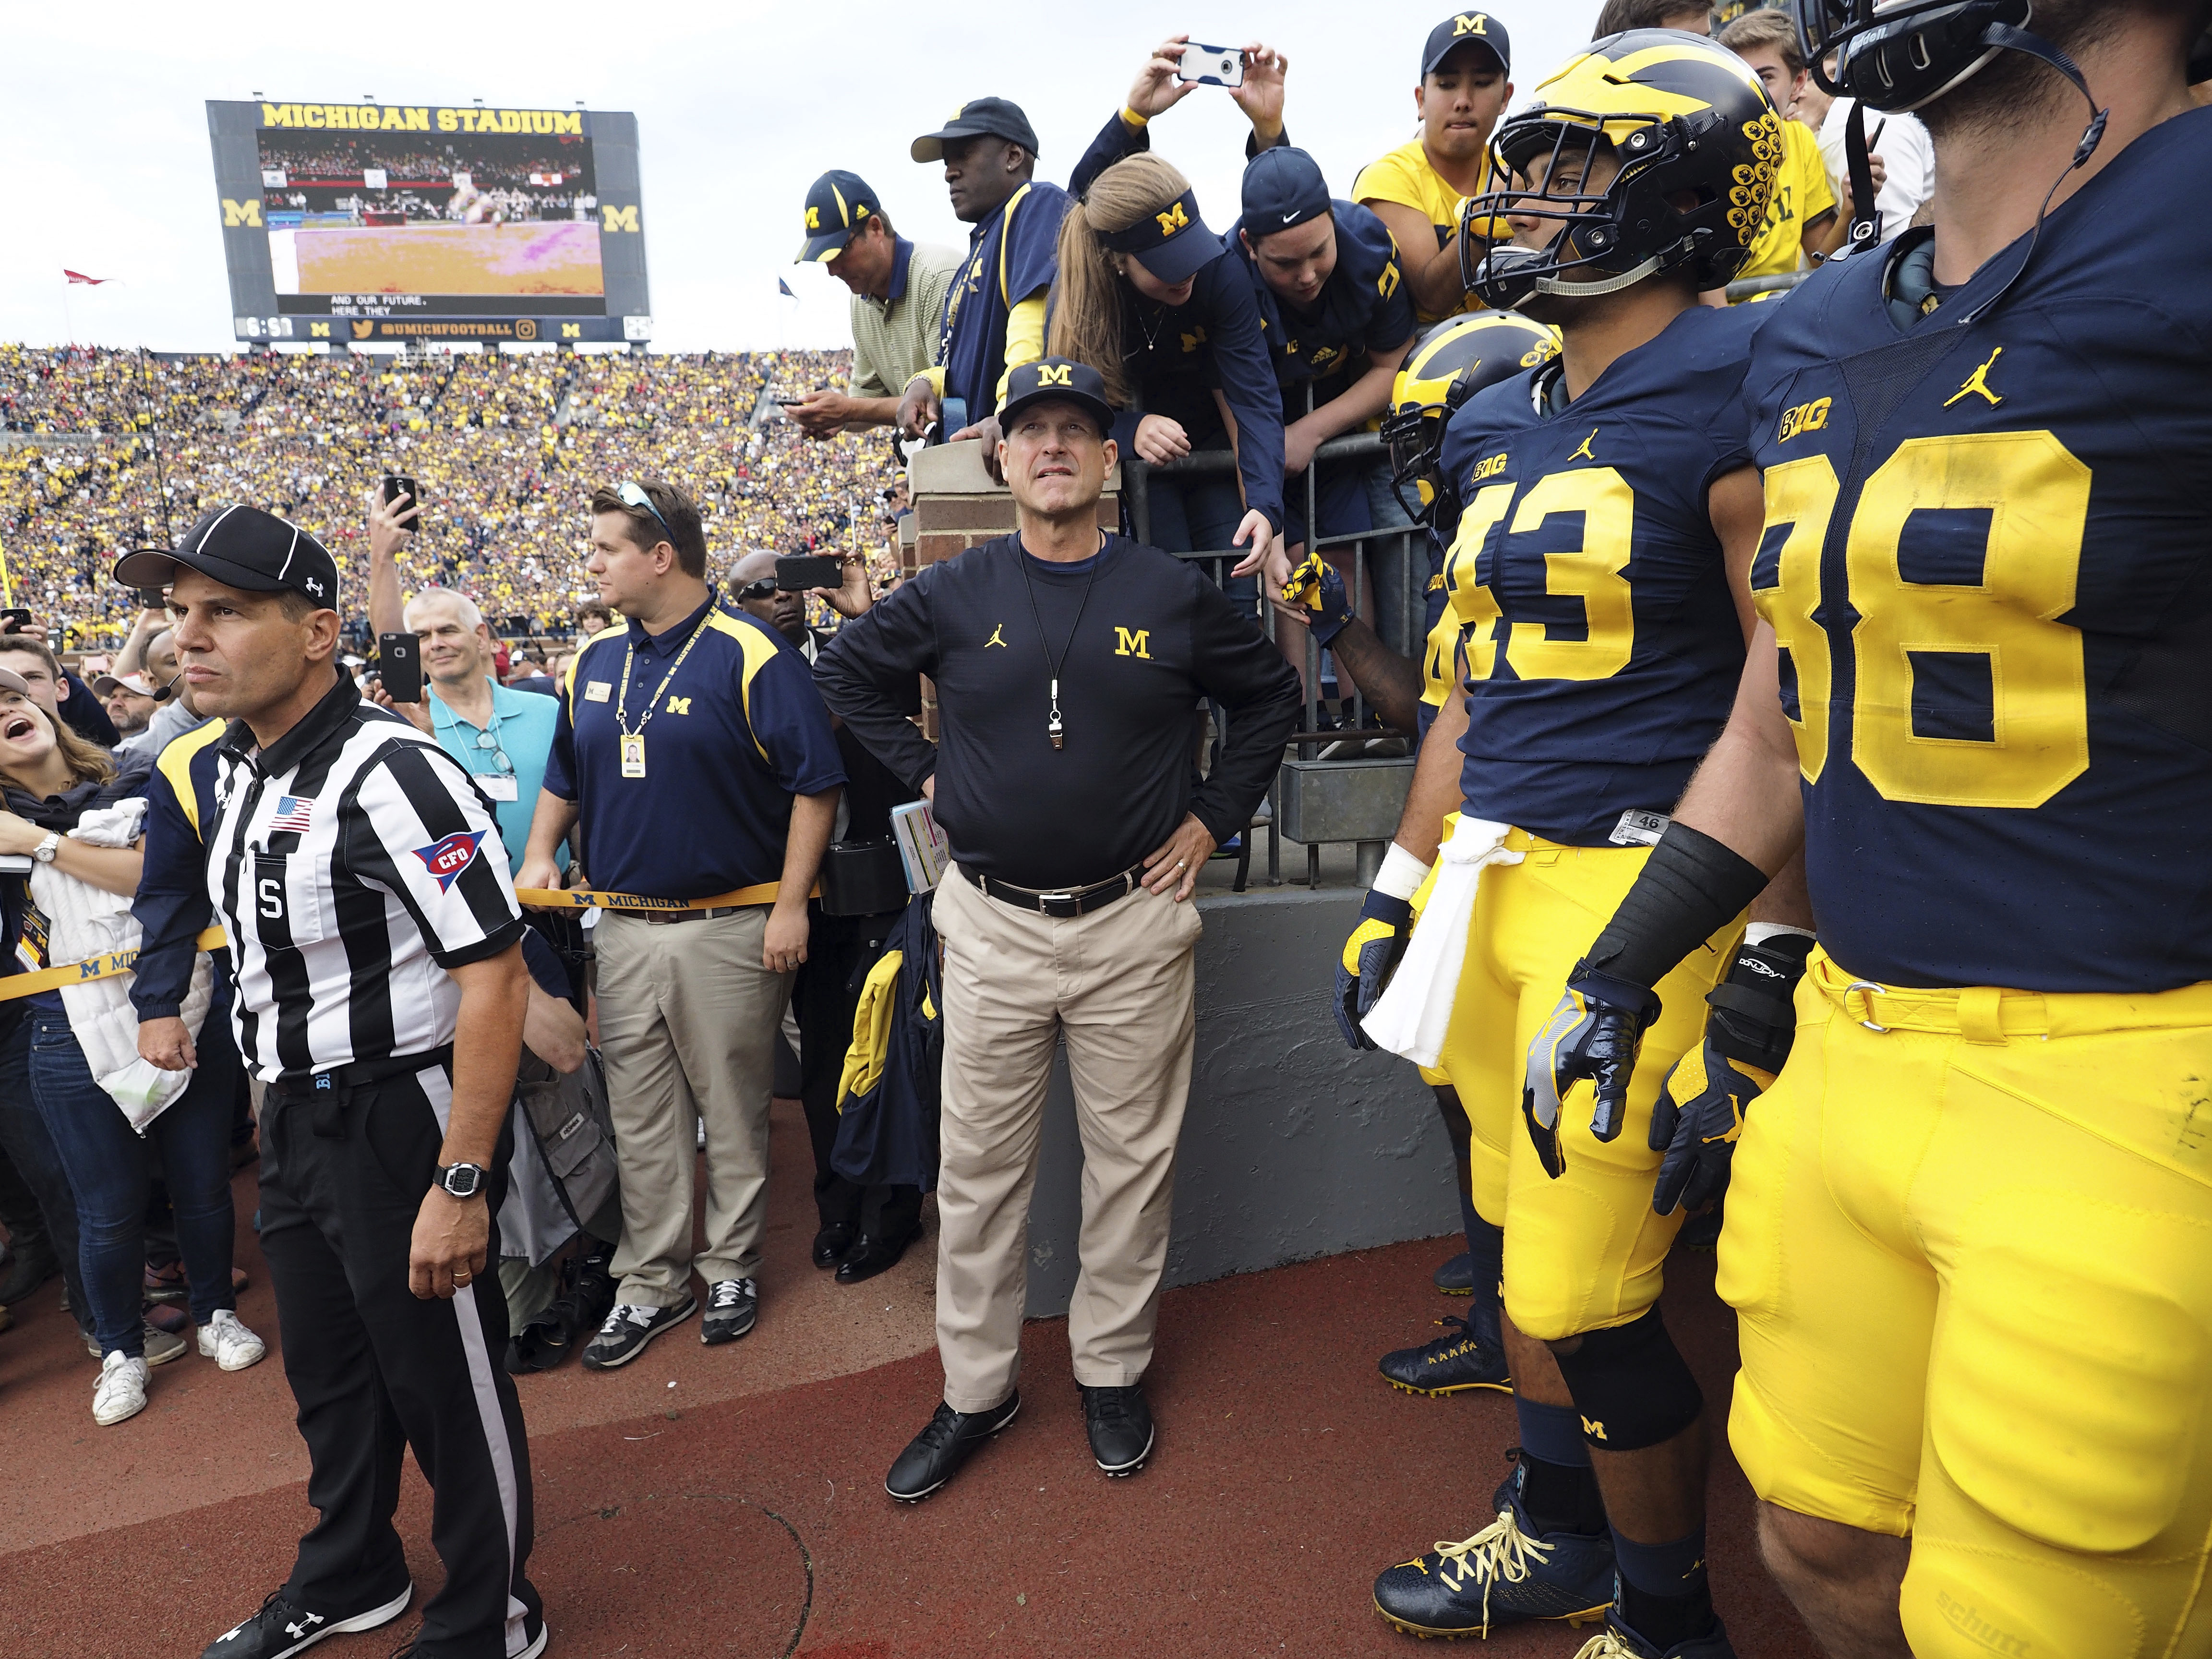 FILE - In this Oct. 1, 2016, file photo, Michigan coach Jim Harbaugh, center, waits to take the field with his players before an NCAA college football game against Wisconsin at Michigan Stadium in Ann Arbor, Mich. Michigan faces Maryland on Saturday. (AP